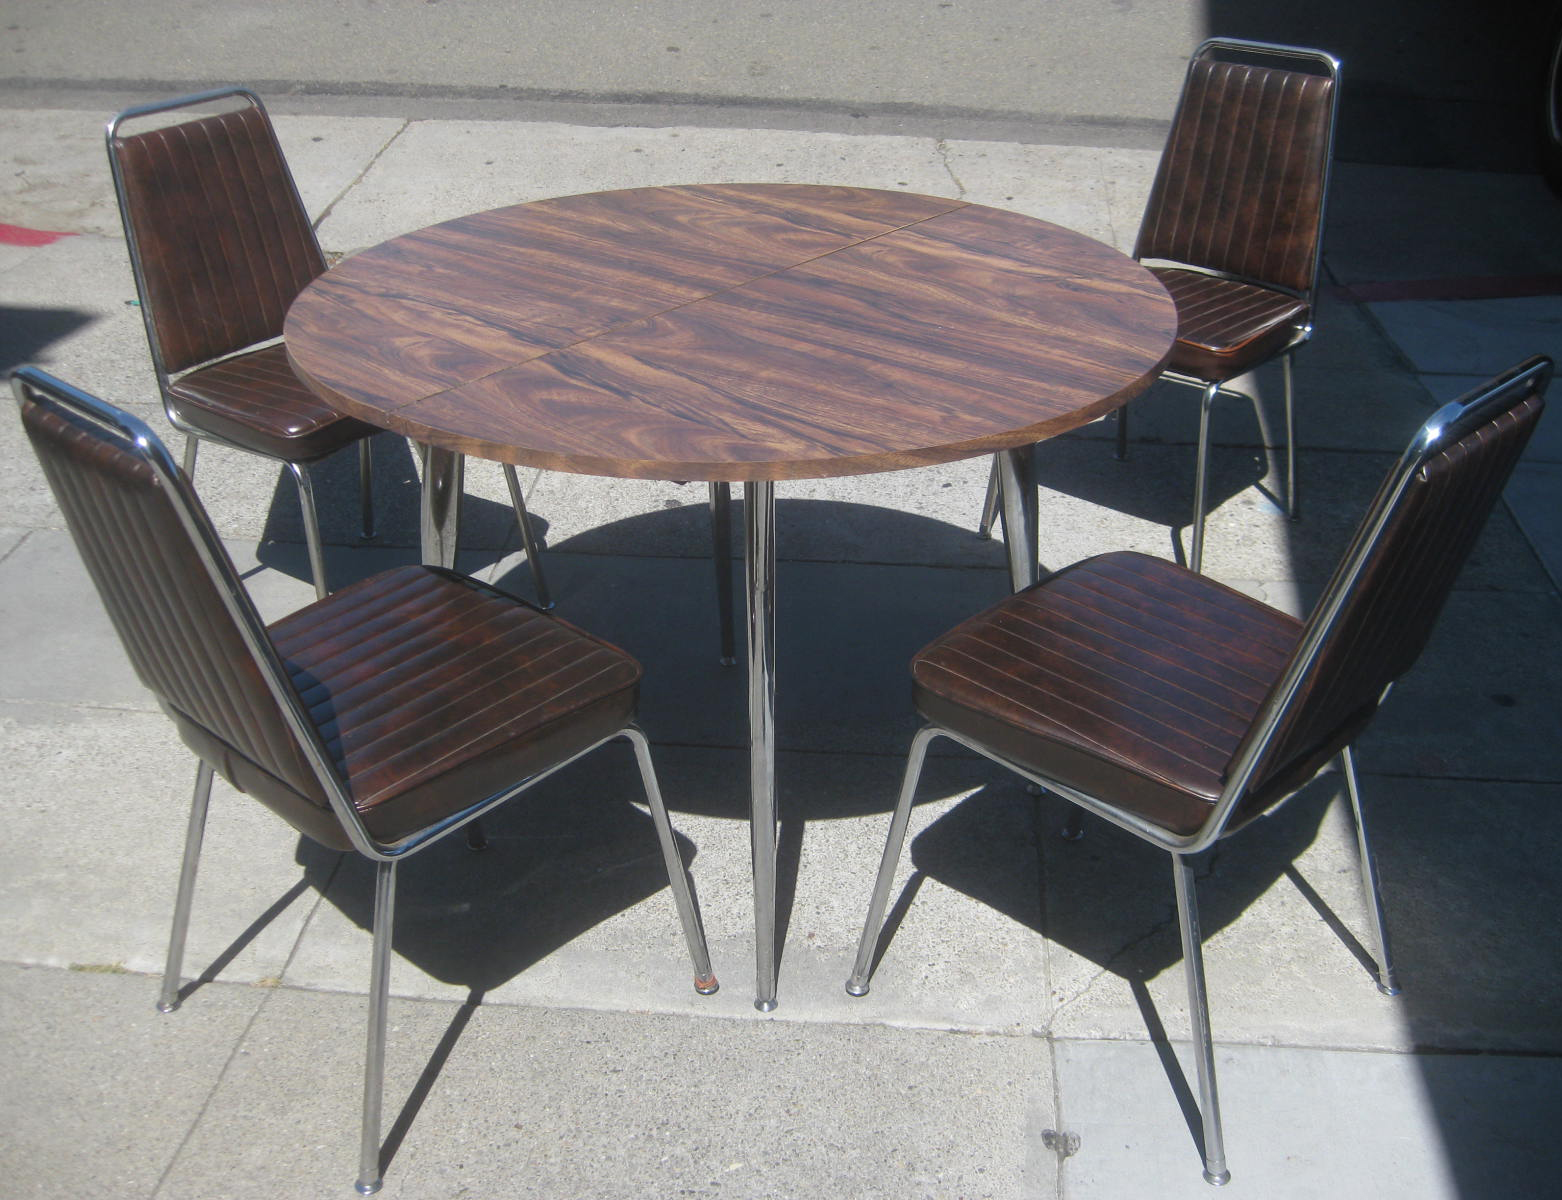 uhuru furniture amp collectibles sold retro kitchen table and chairs